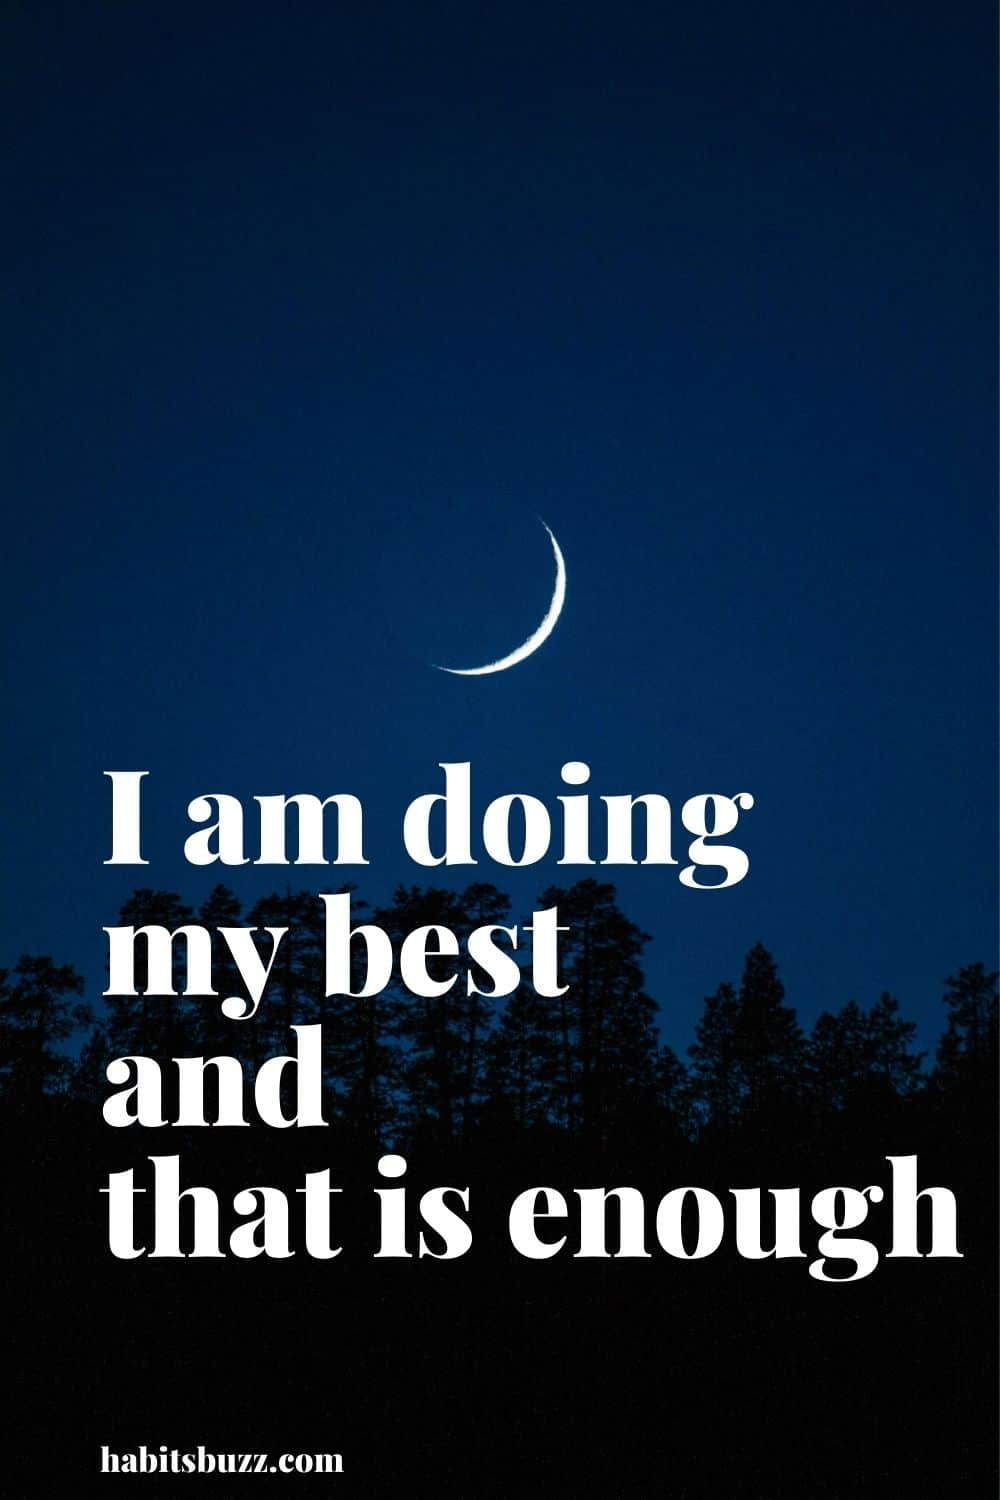 I am doing my best and that is enough - mantras to get through bad days in life